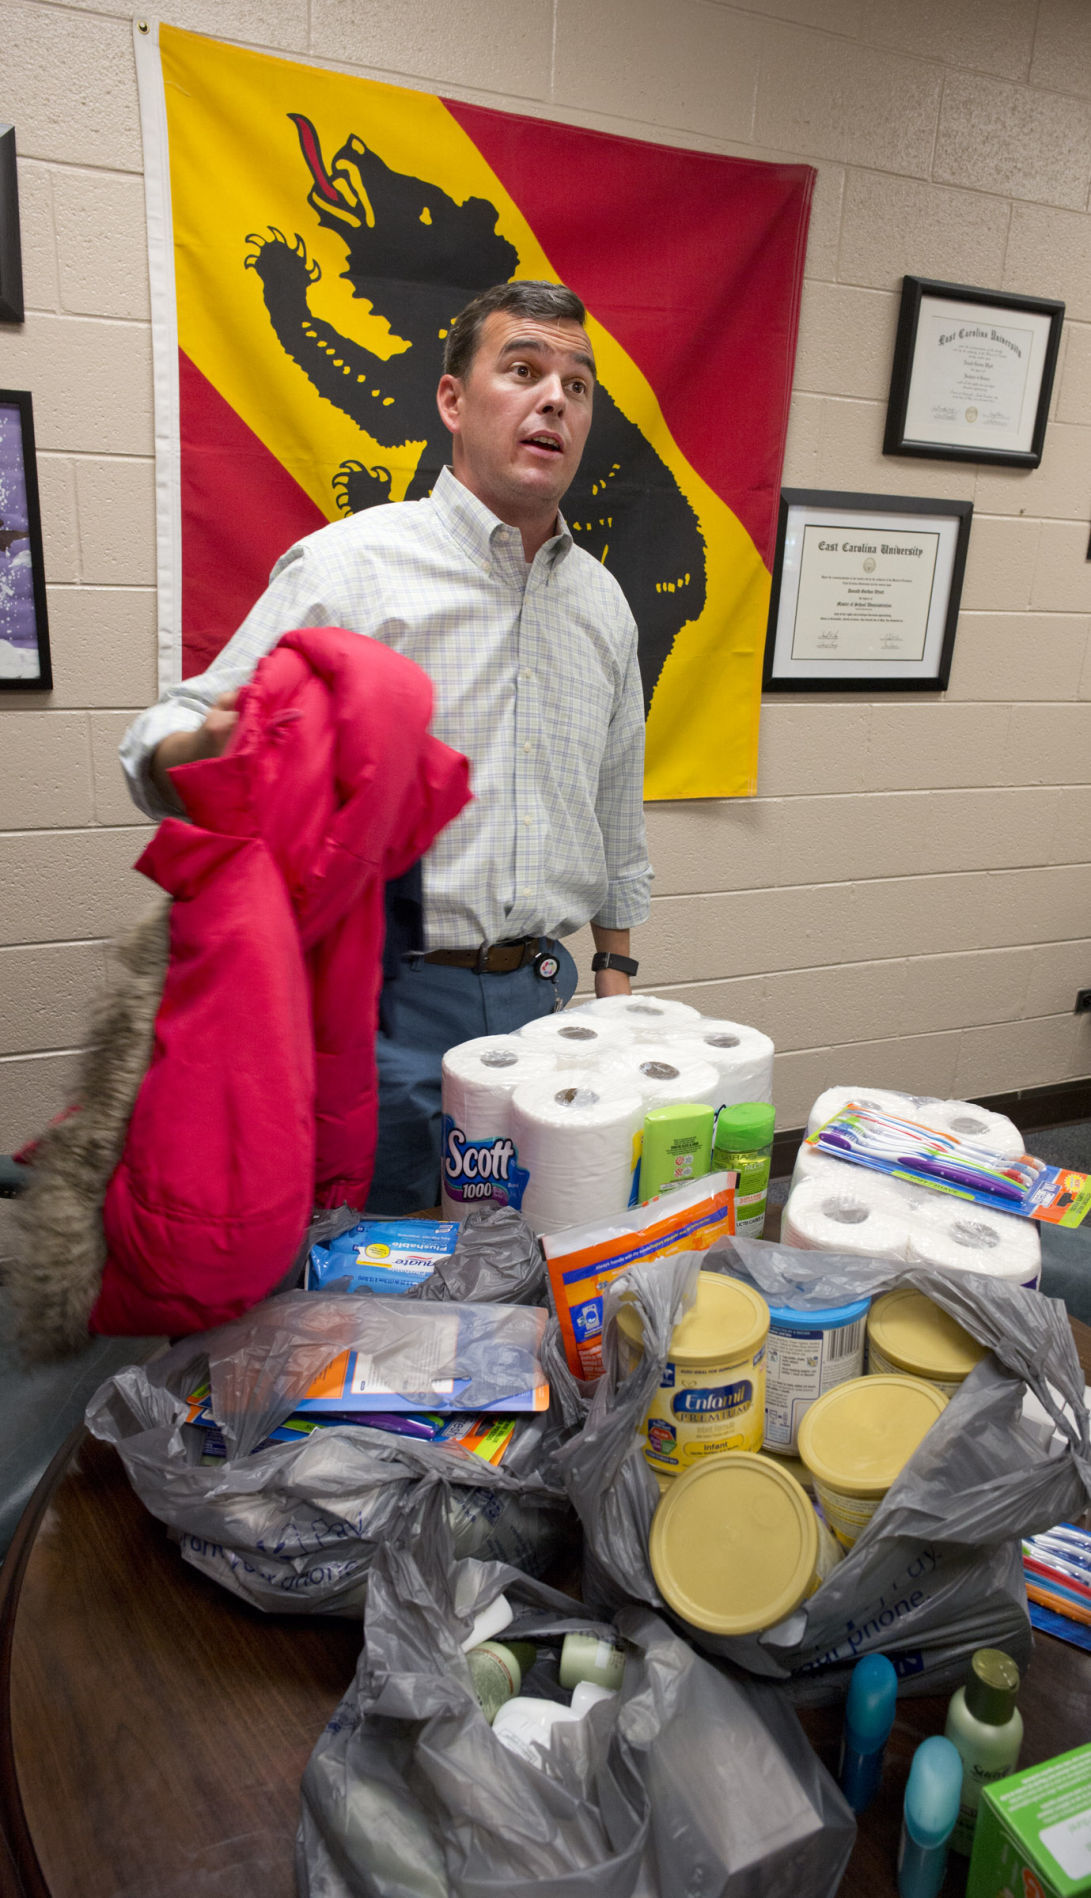 Sedge garden principal collects aid for new bern local Sedge garden elementary school